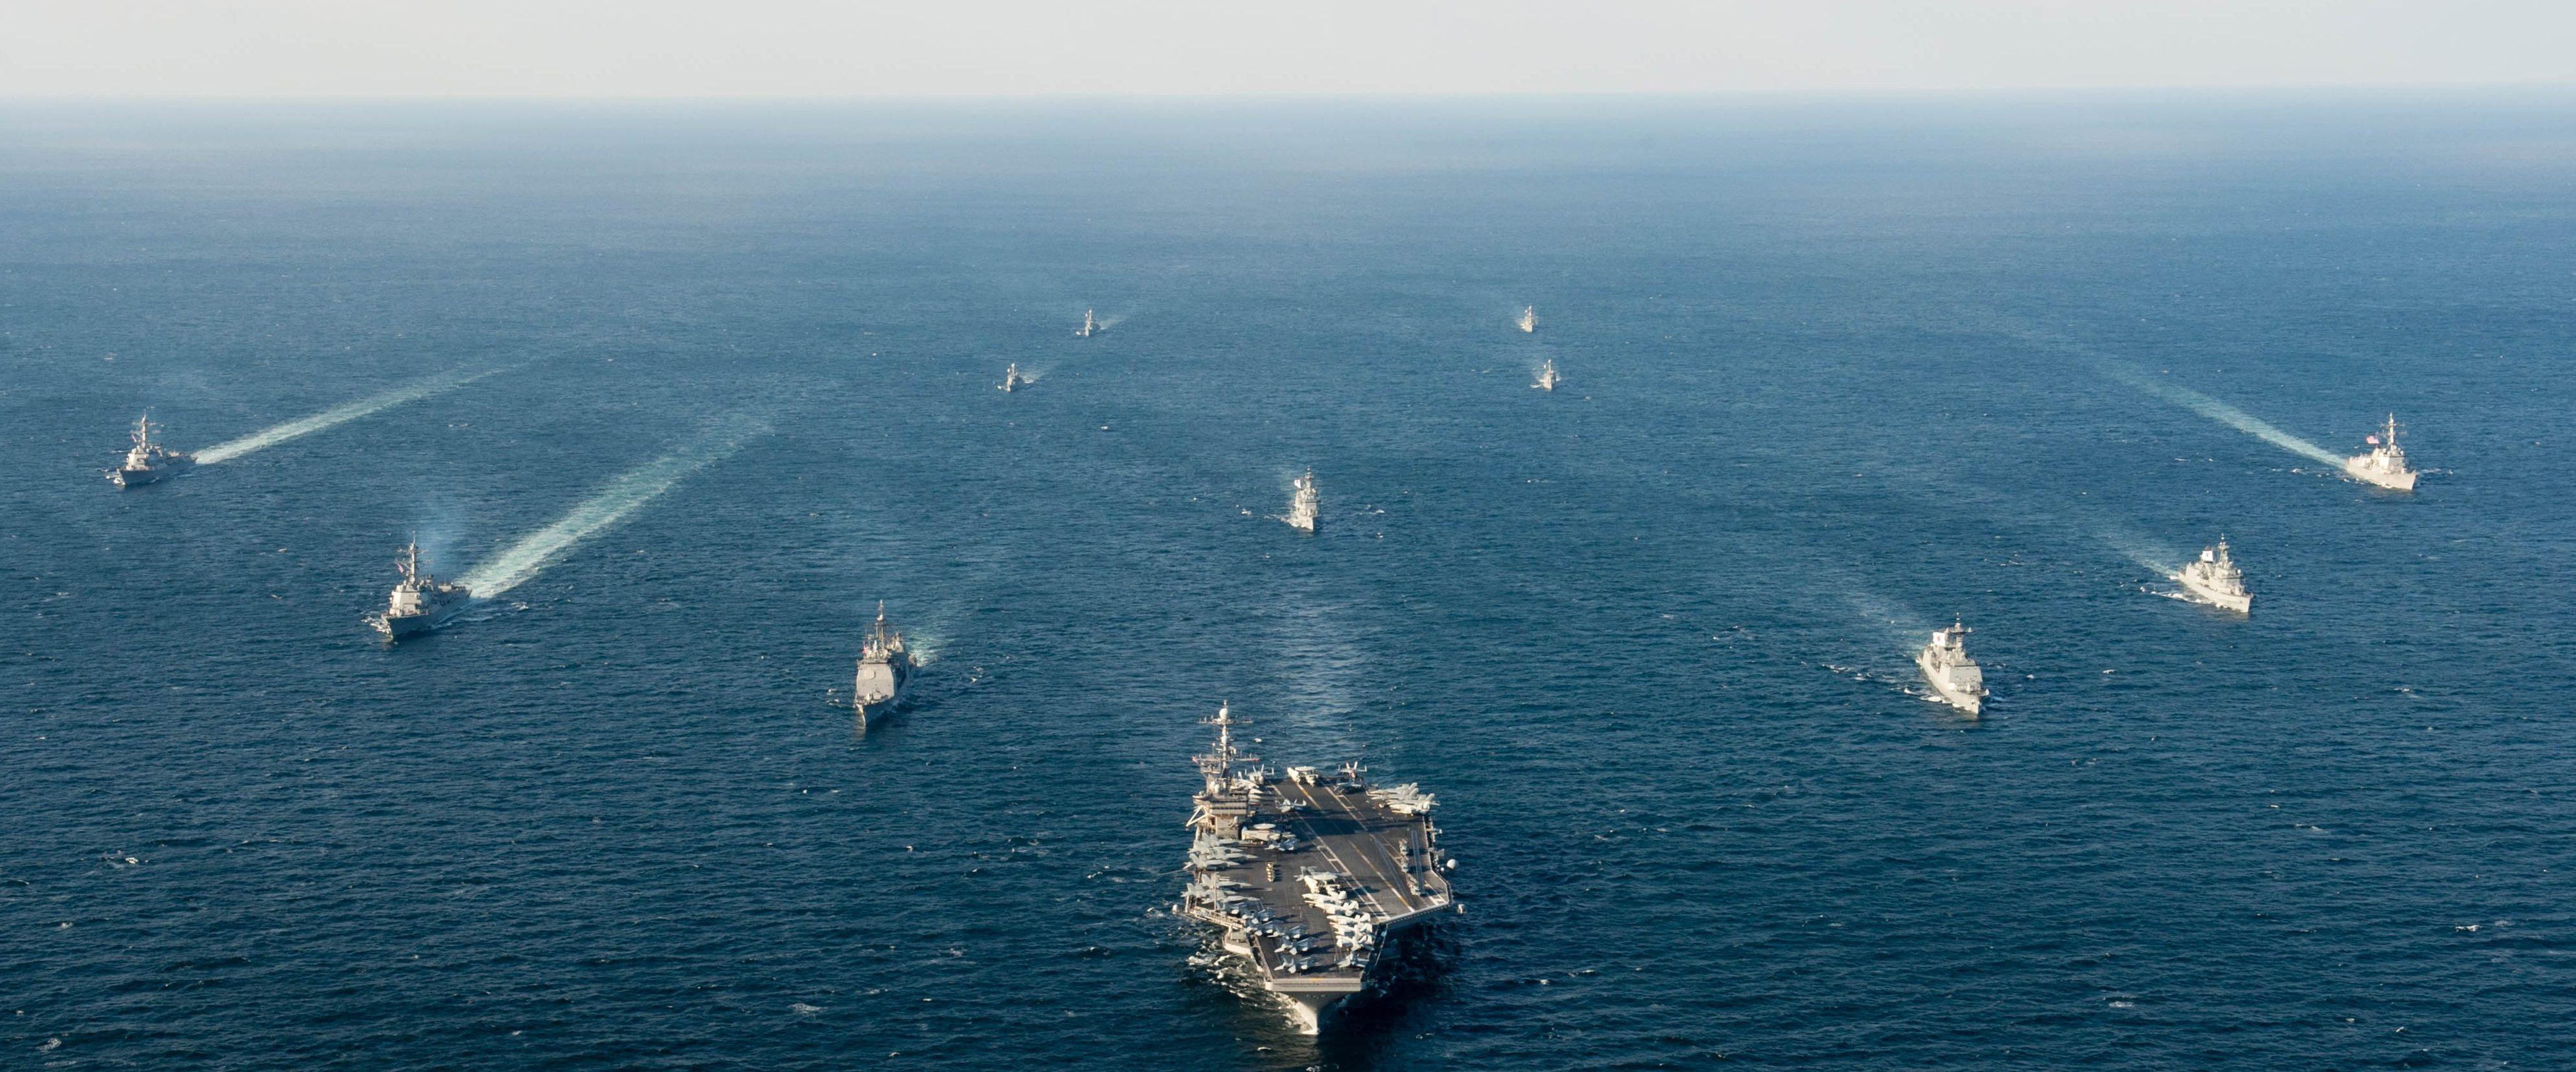 The Navy's Approach to Developing Cloud Requirements » Posts